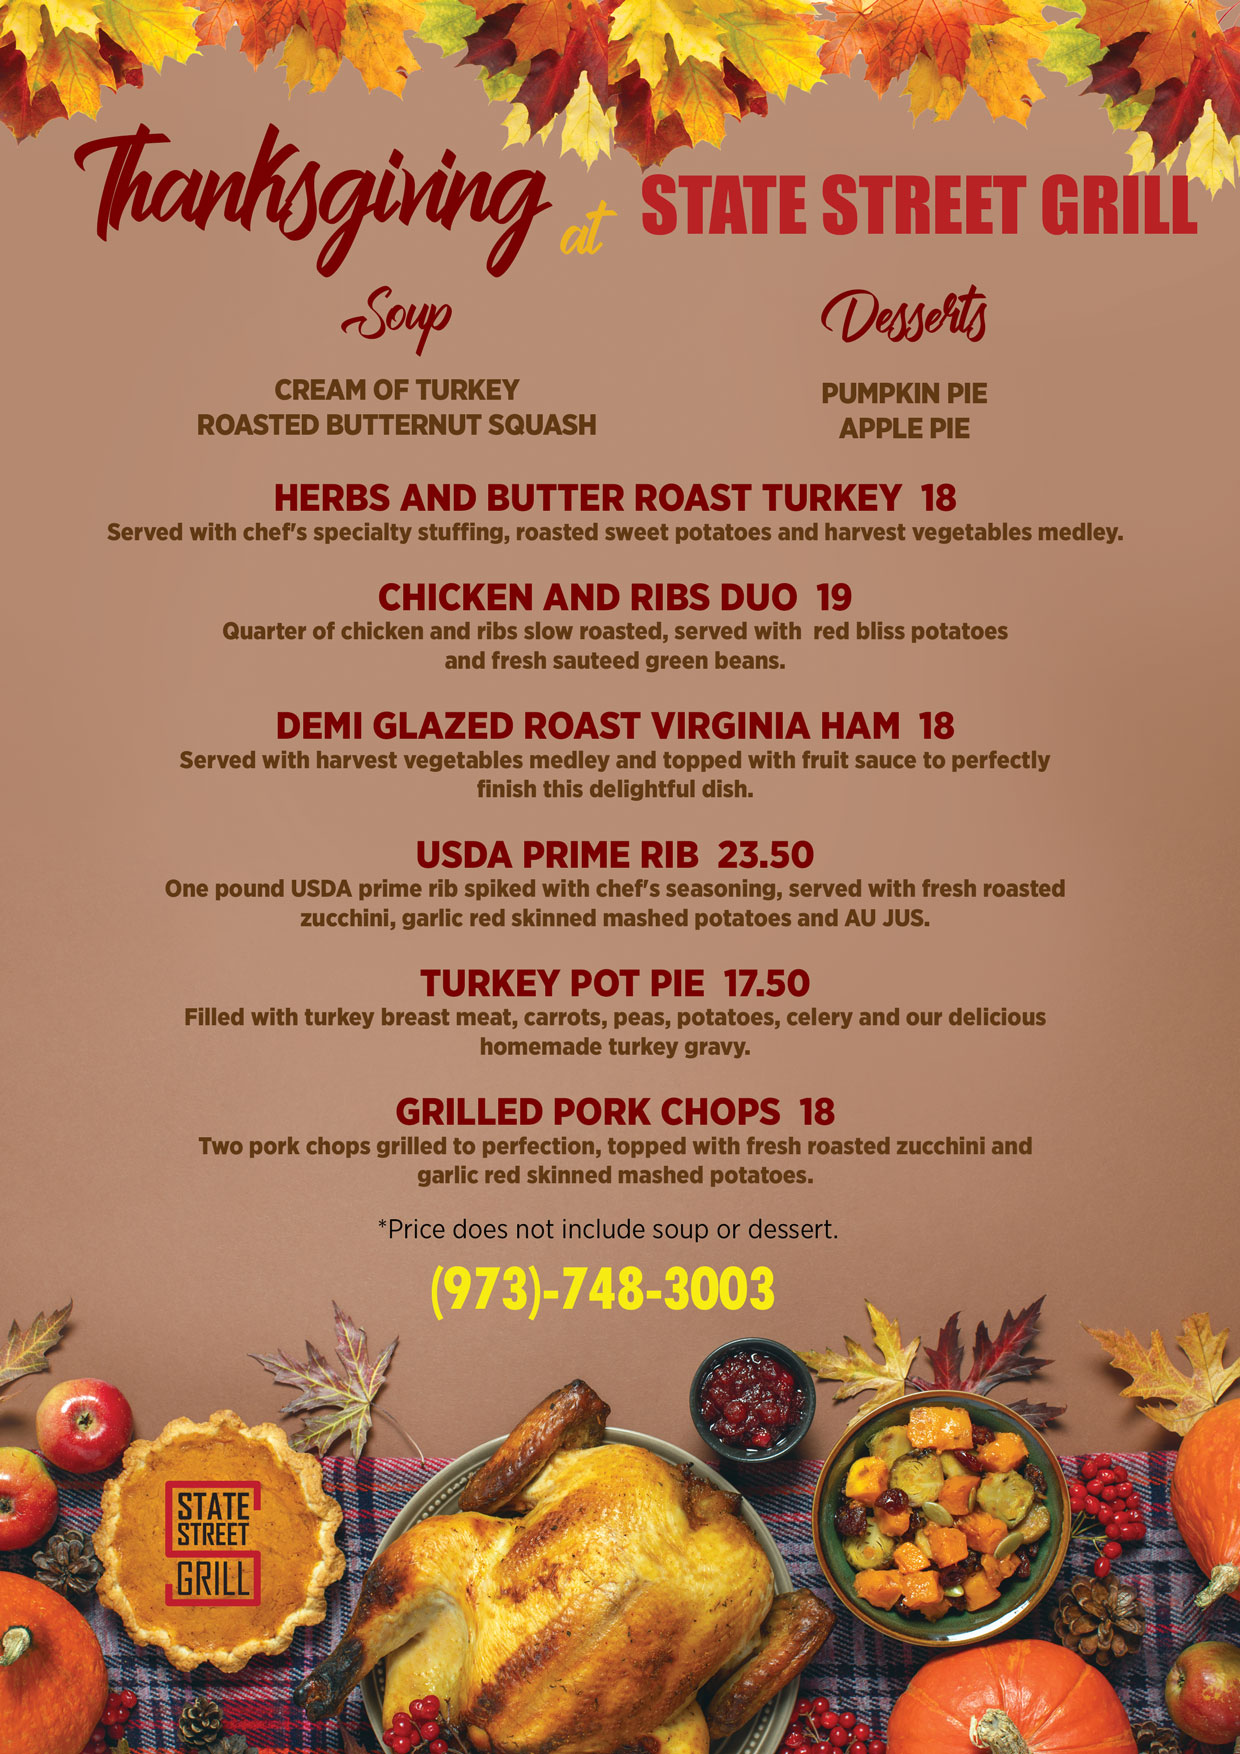 columbus day specials at state street grill nj bloomfield